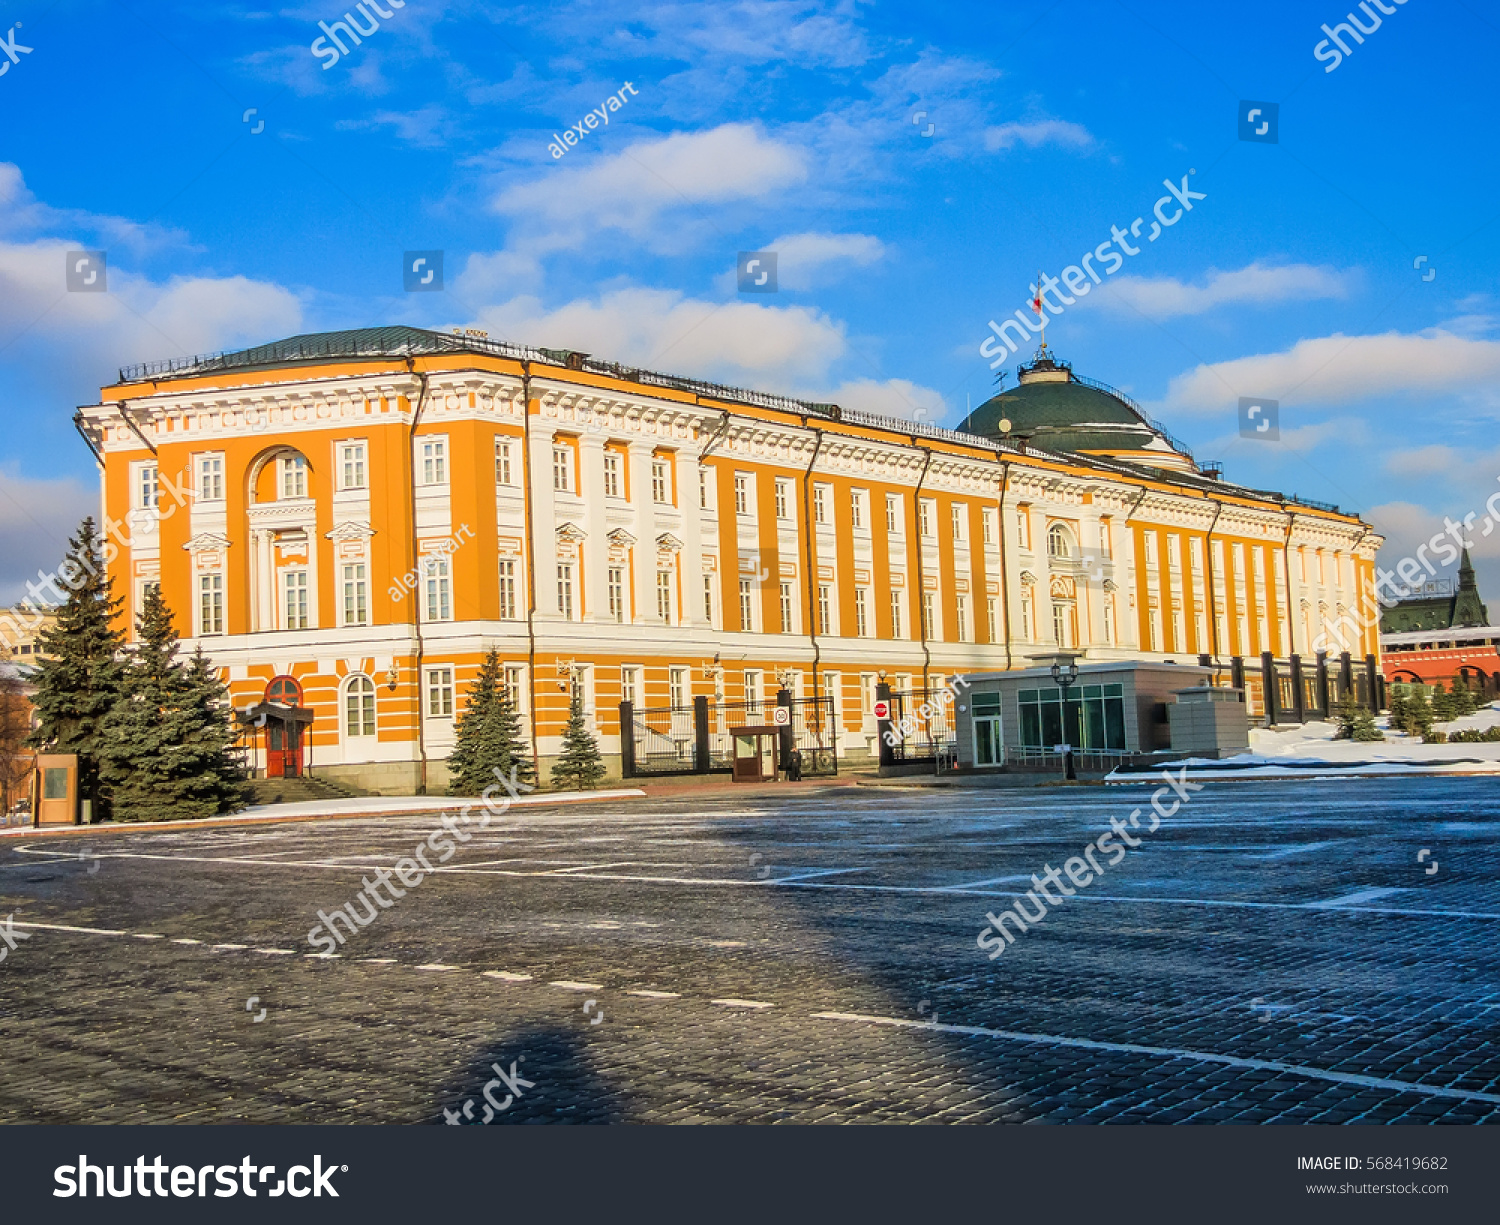 The Kremlin State Palace is a legendary building